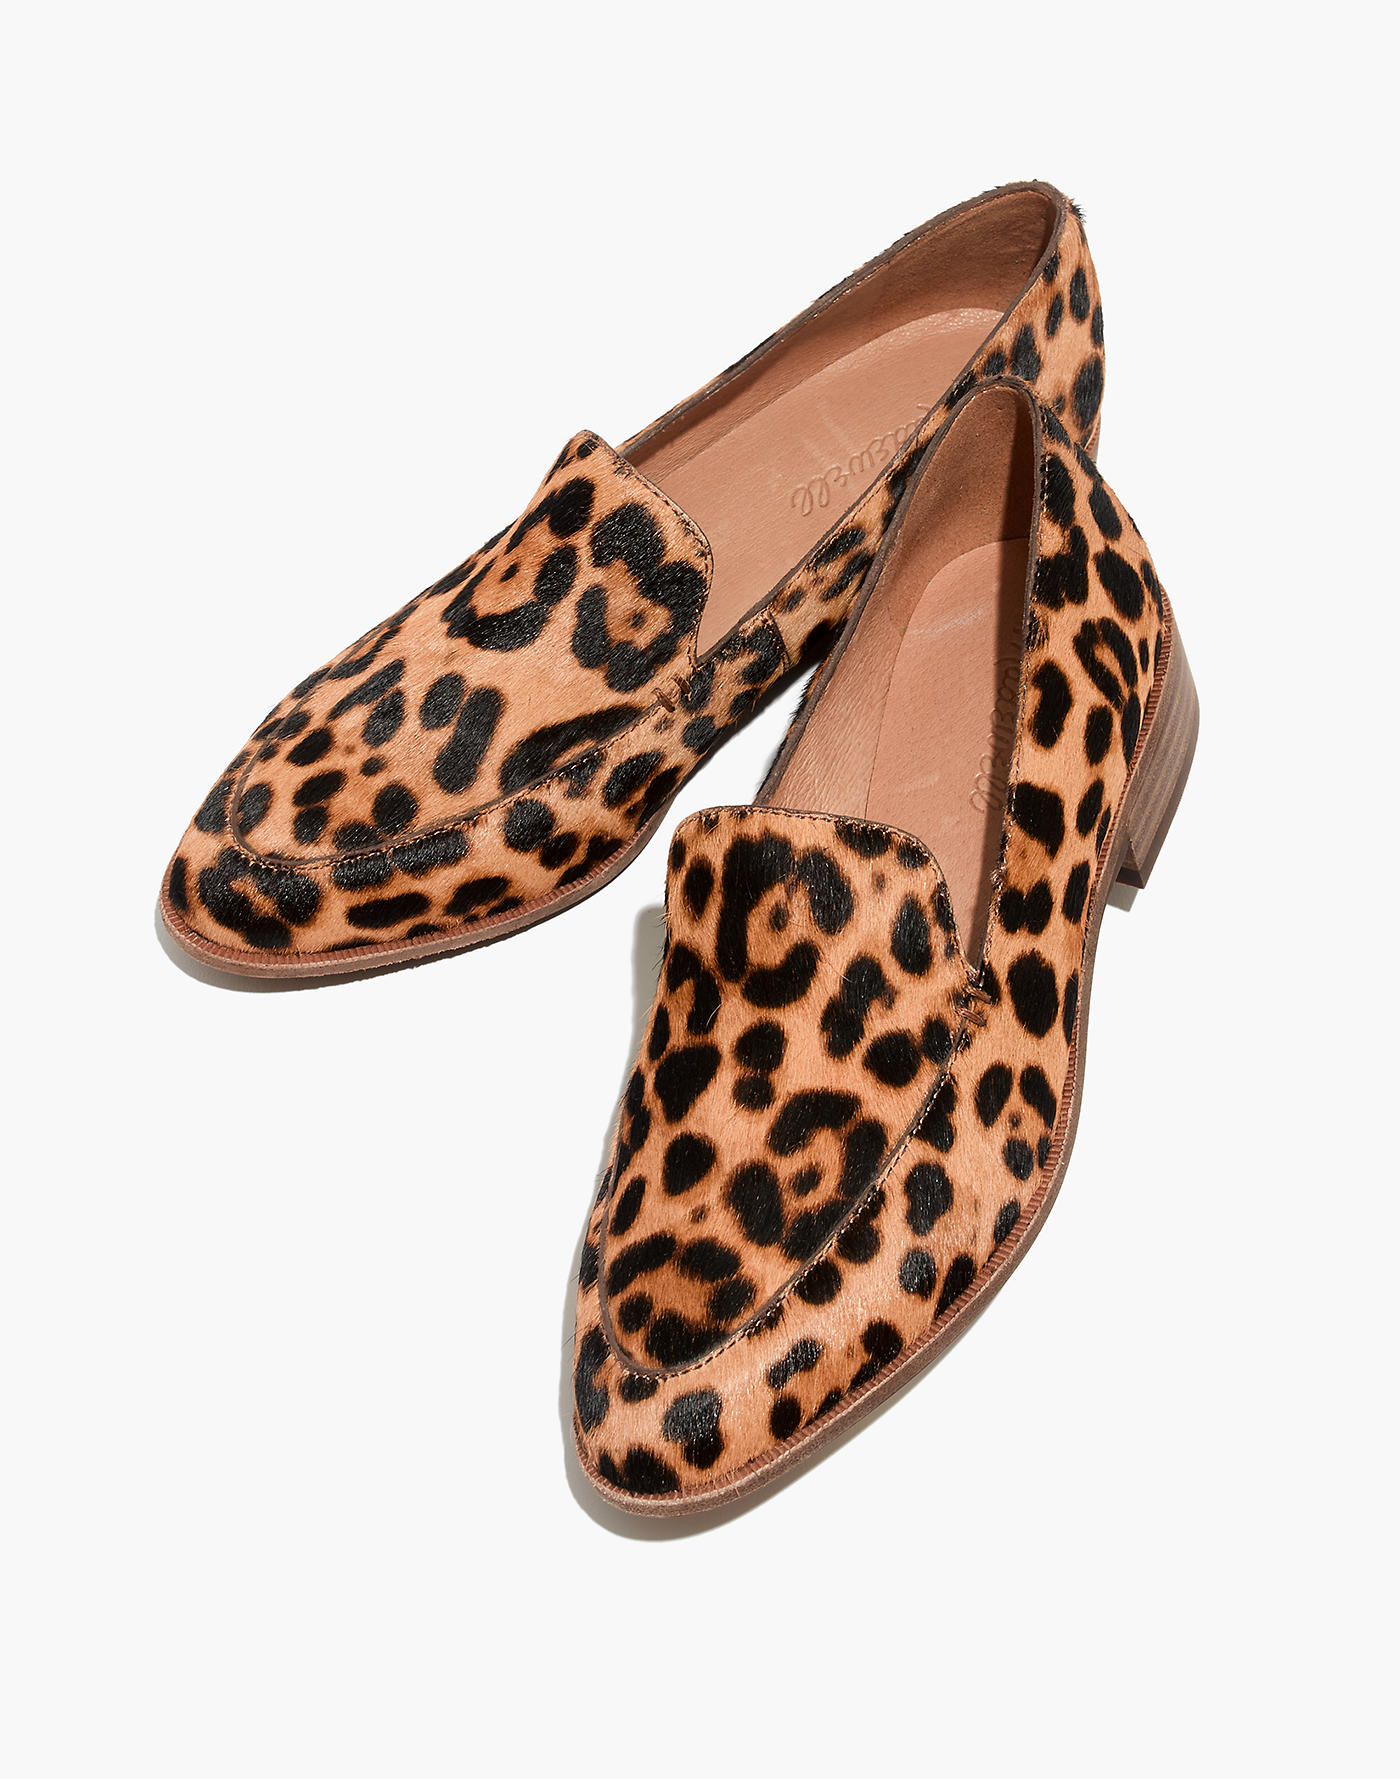 Madewell The Frances Loafer in Leopard Calf Hair